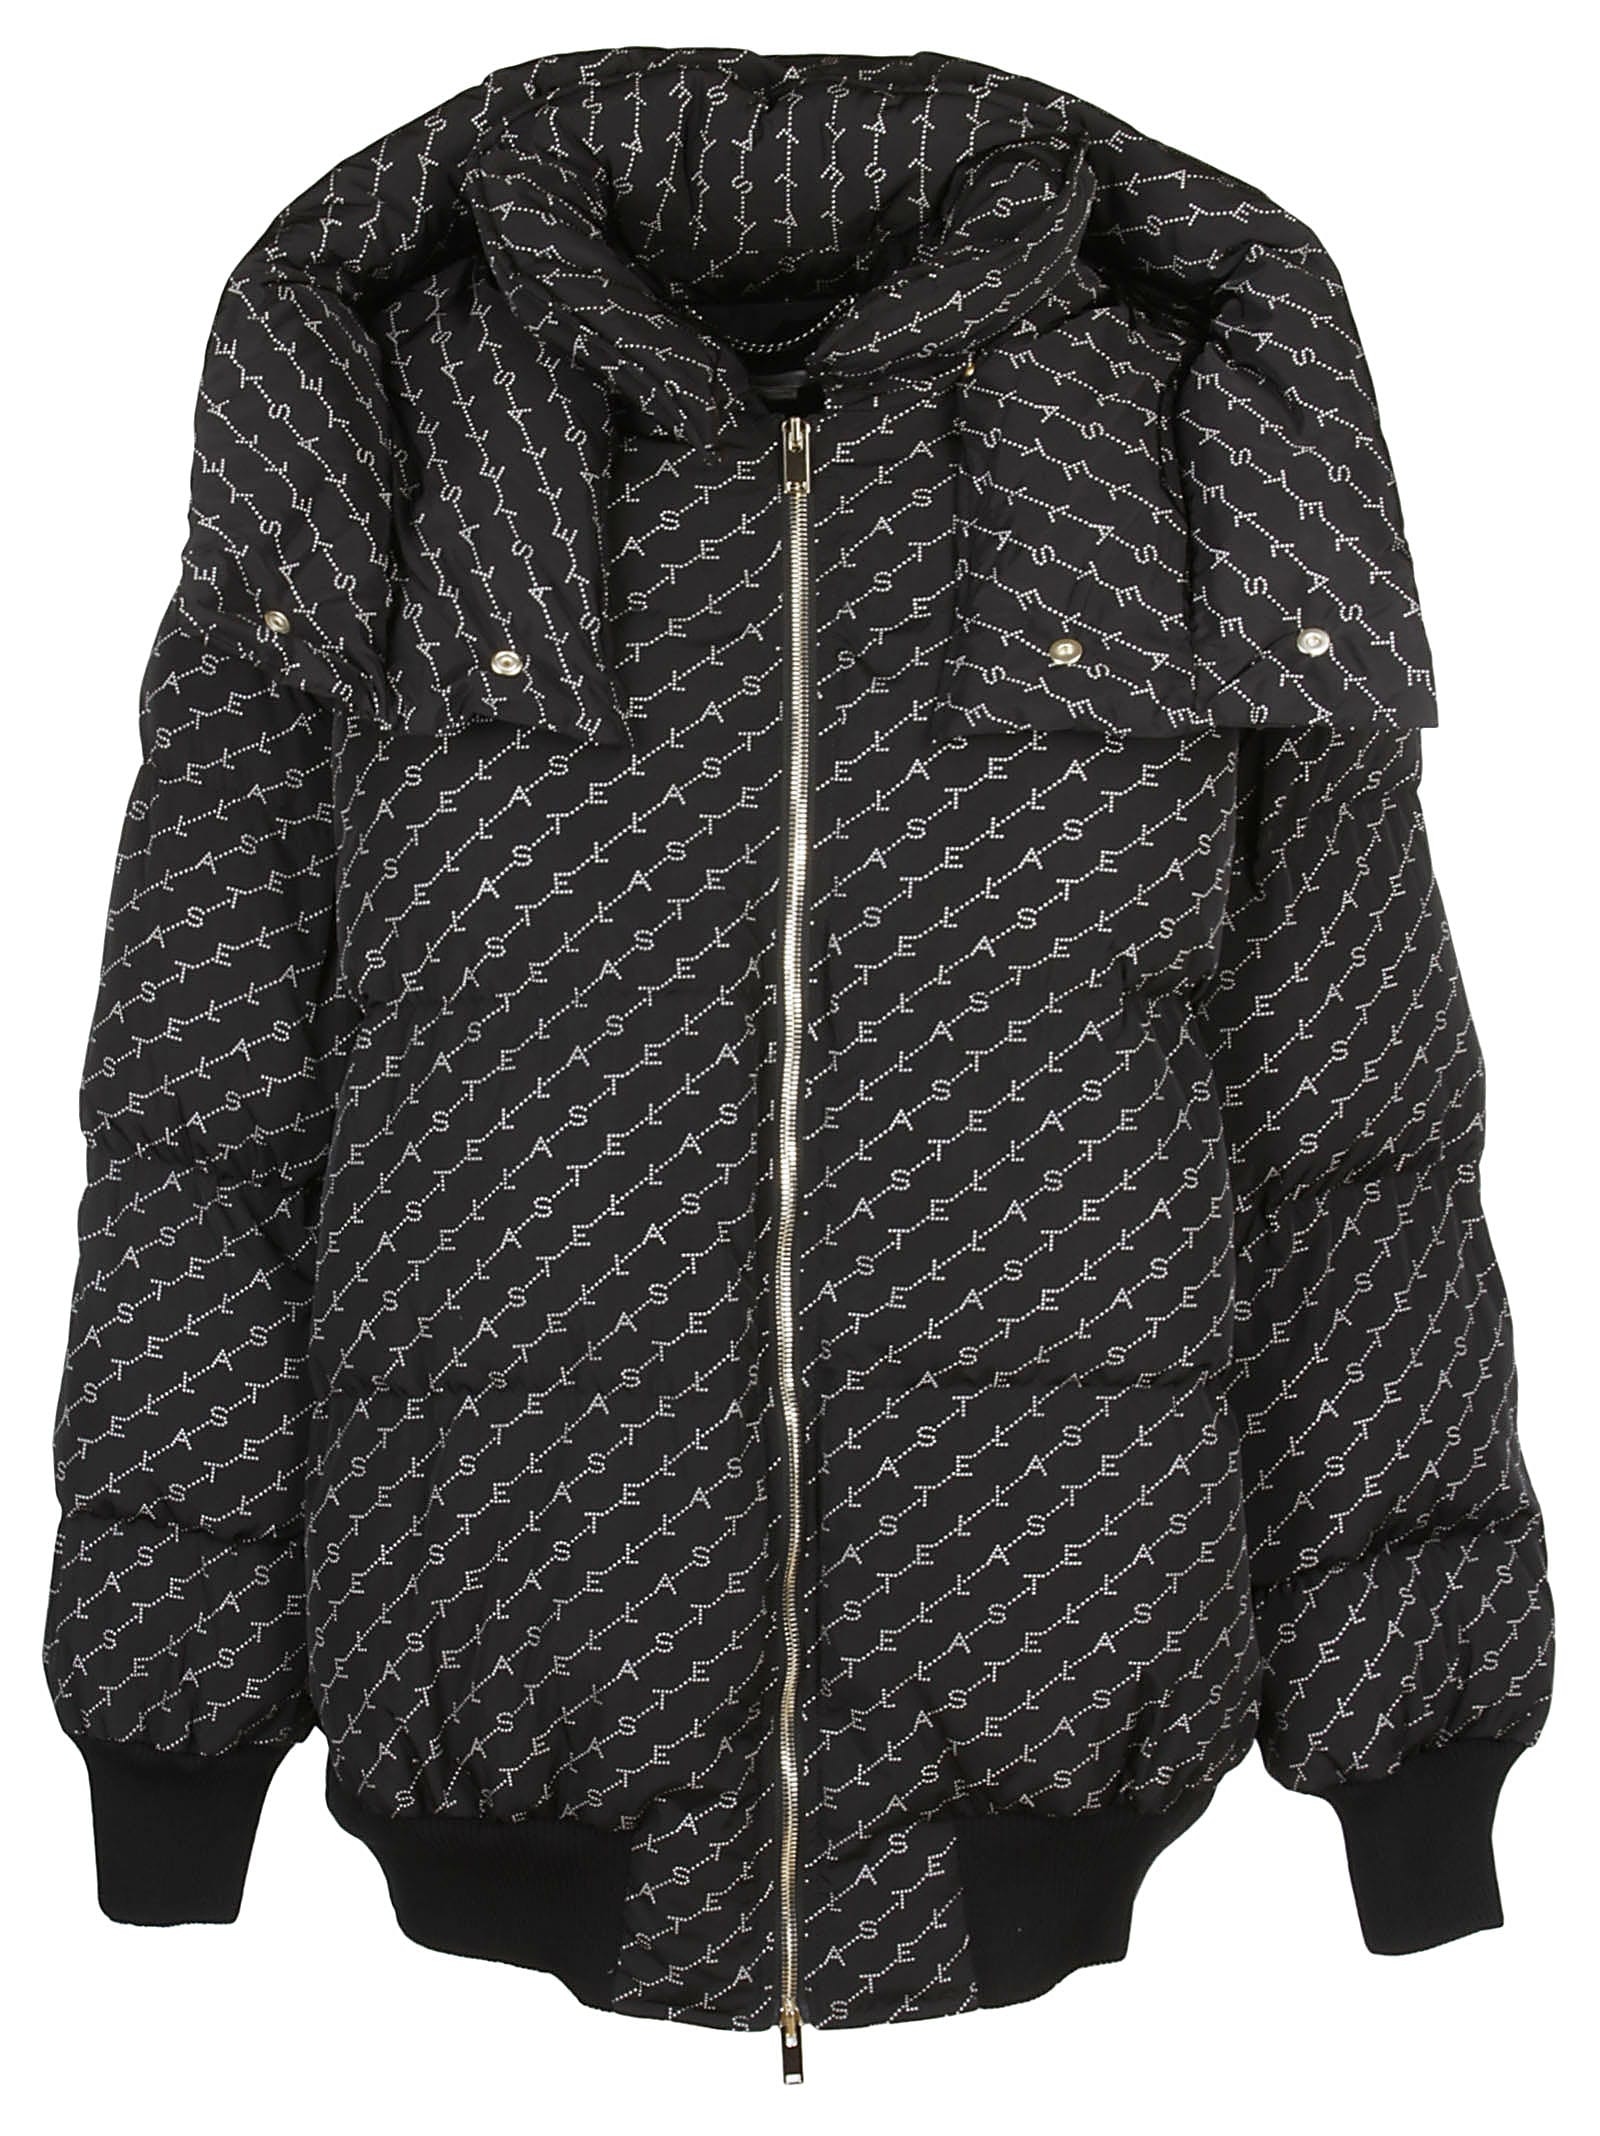 Stella McCartney Hooded Jacket